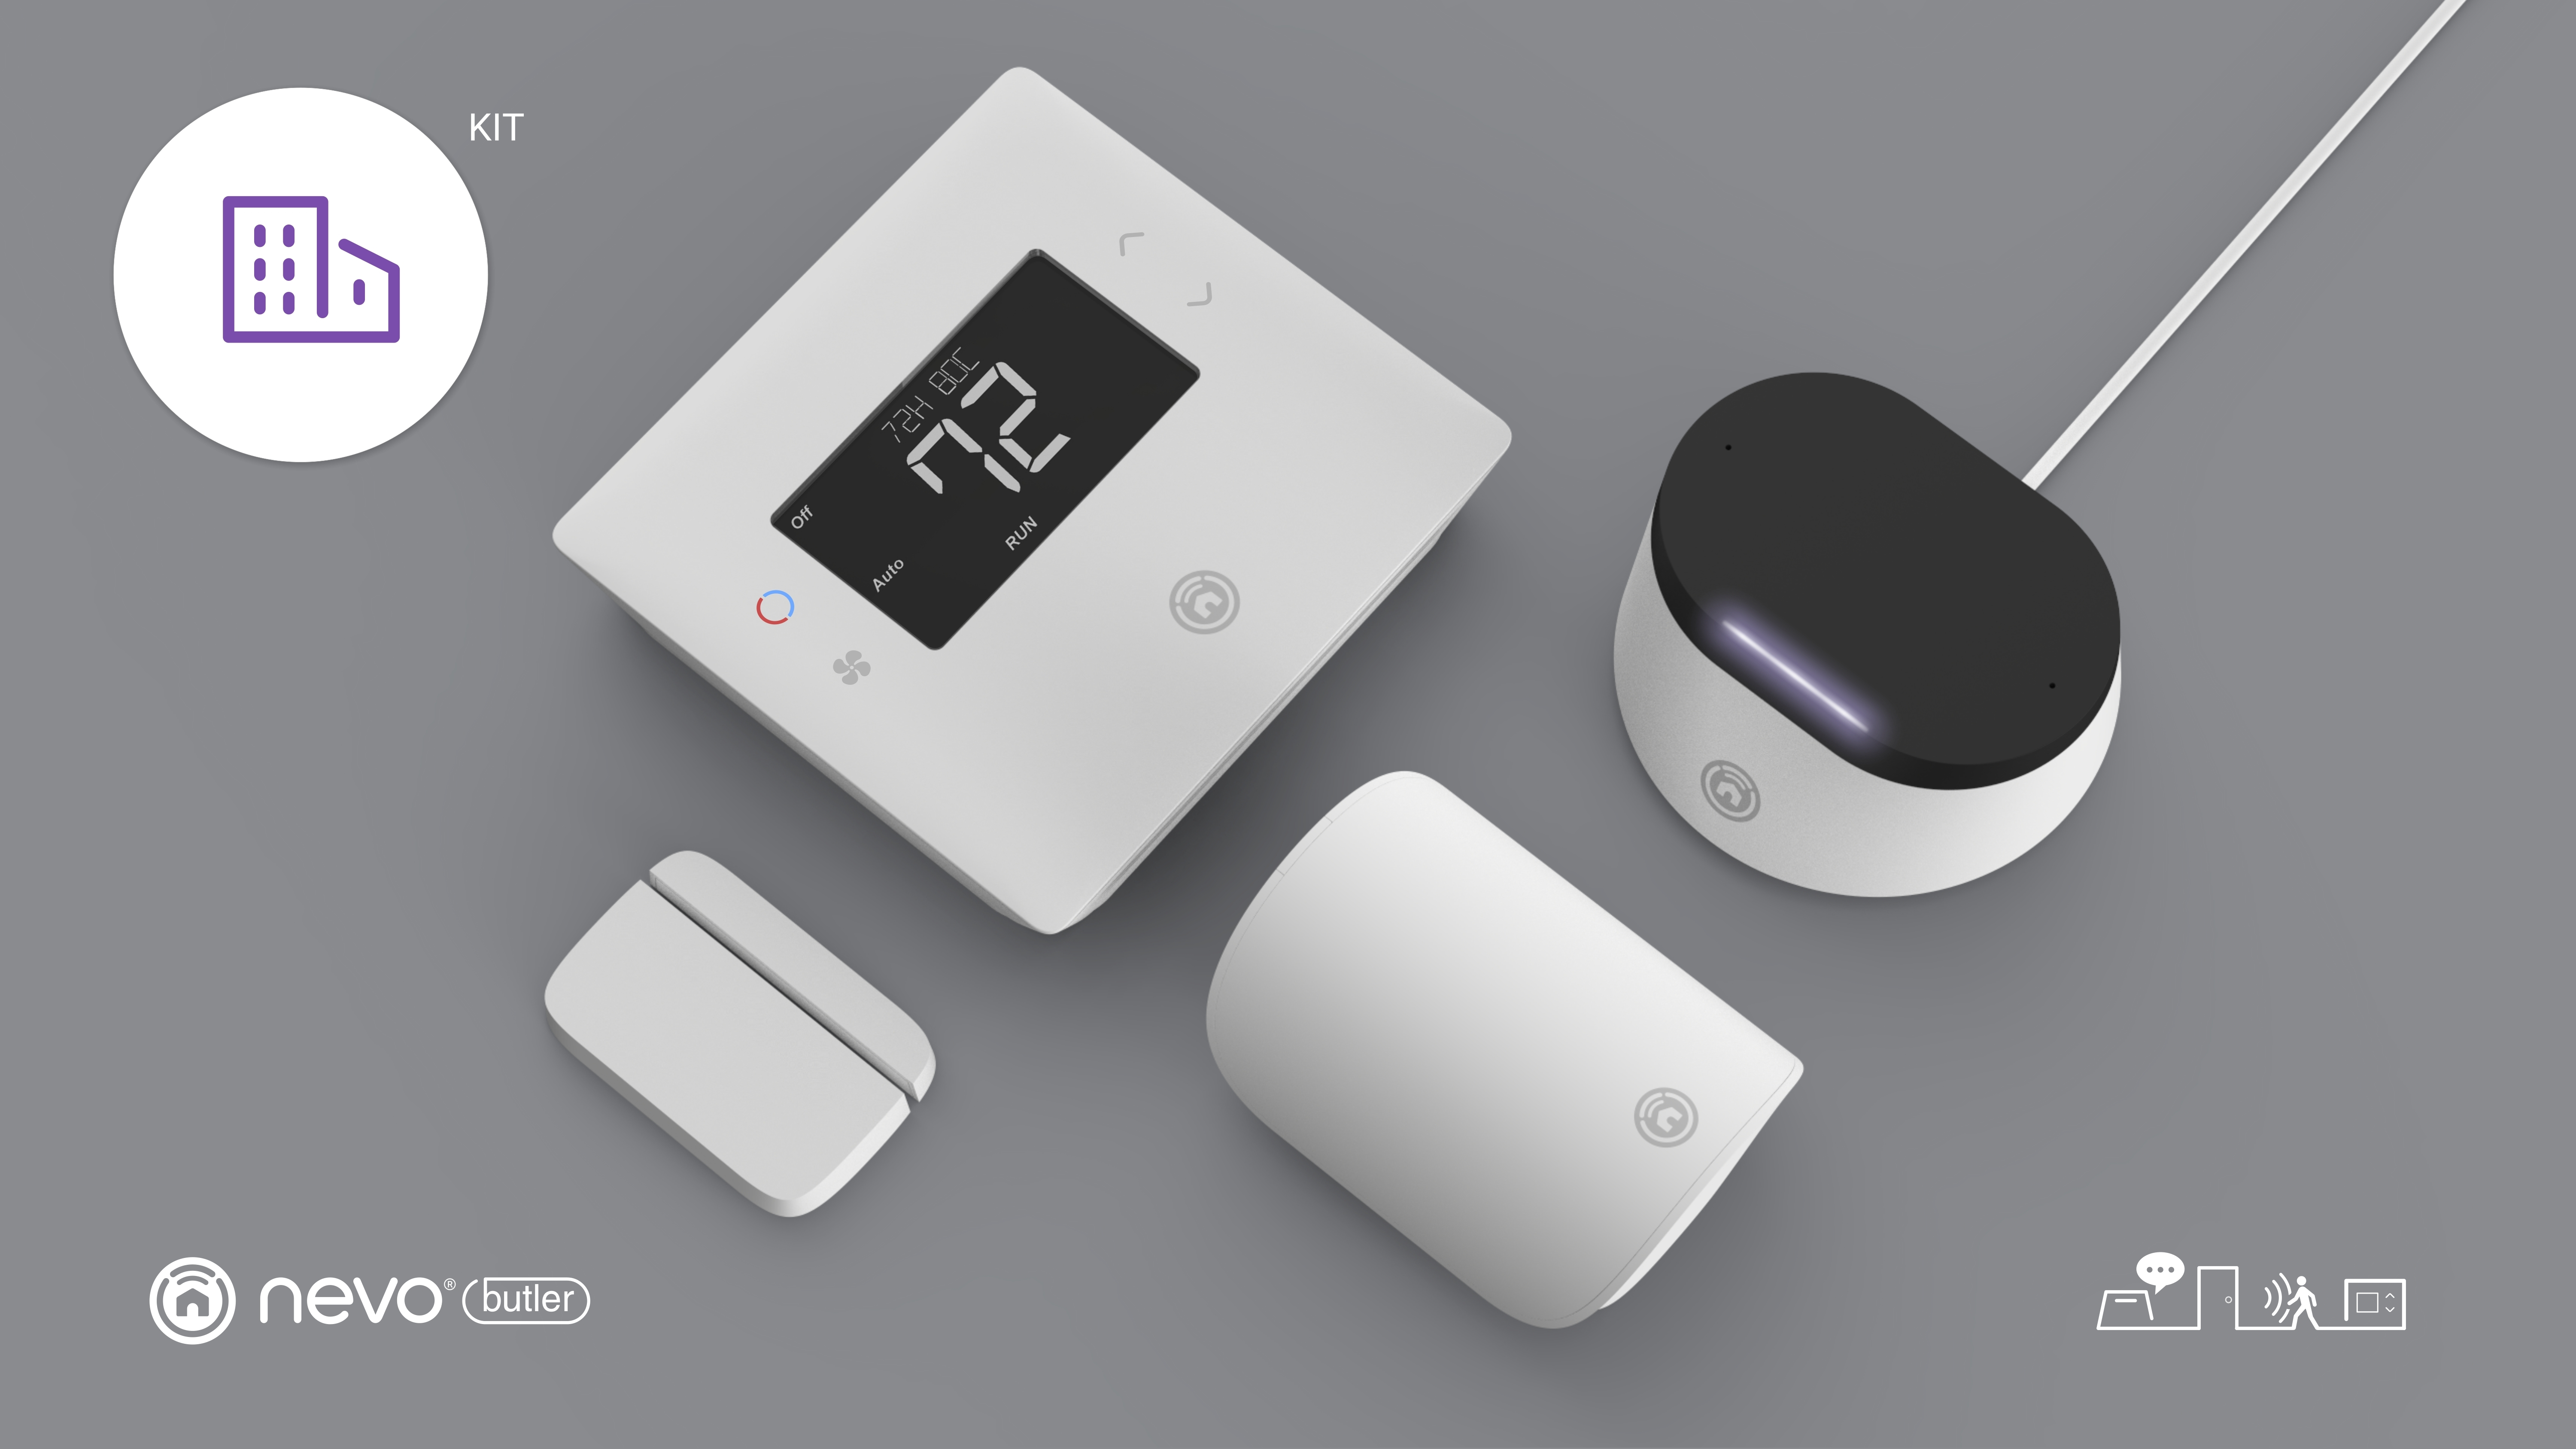 Universal Electronics Introduces Smarter Living Kits Powered By Nevo Smart House Wiring Butler To Accelerate Introduction Of New Home Services At Ces 2019 Business